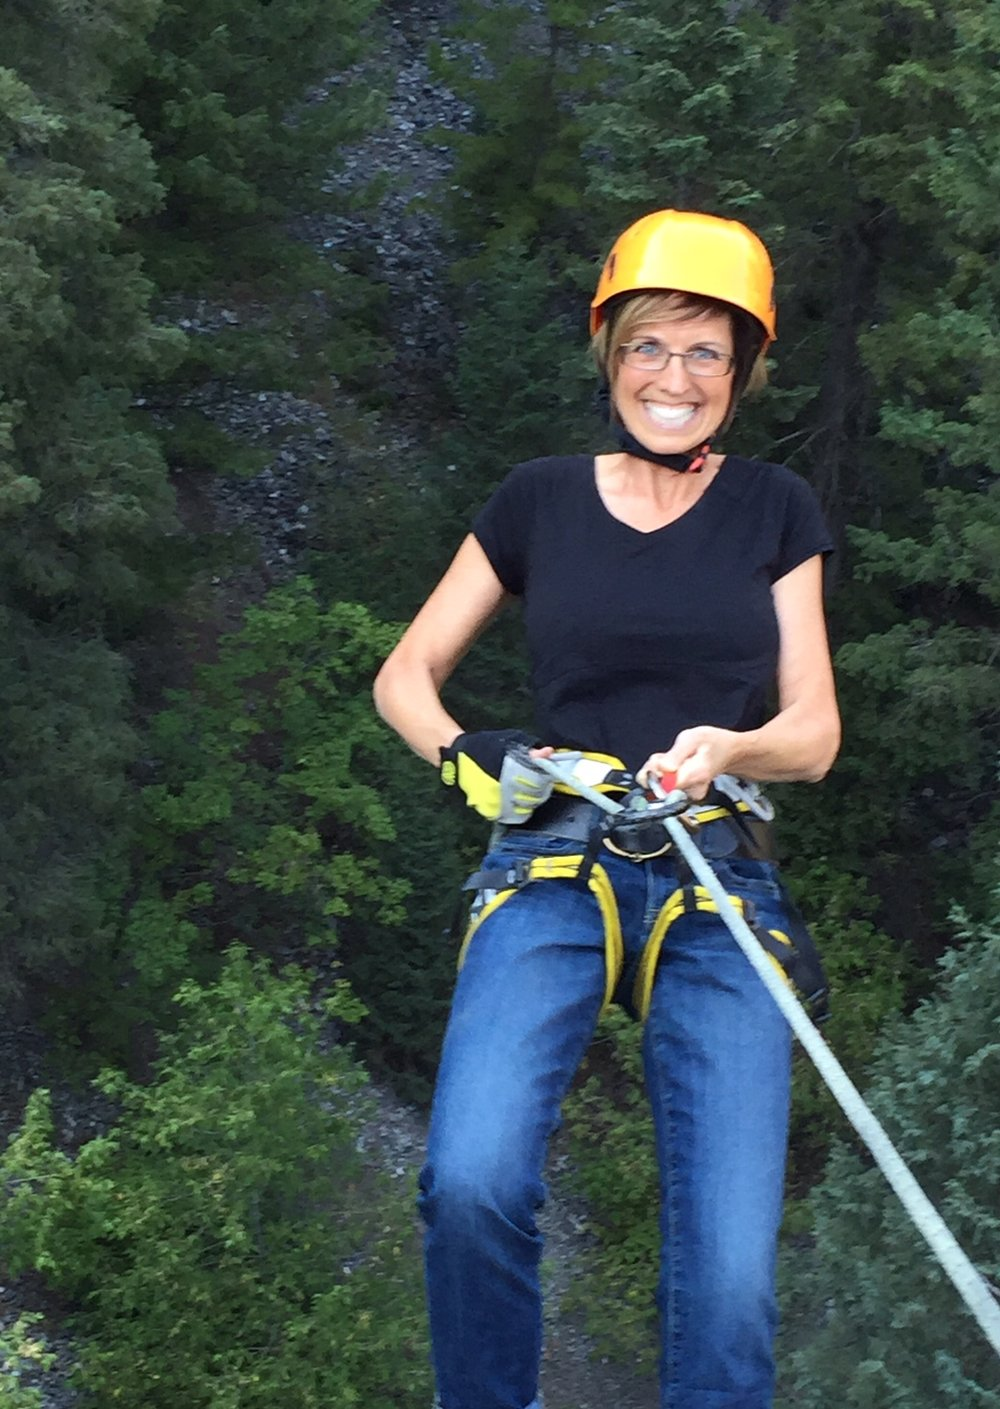 Shelli repelling edited.jpeg